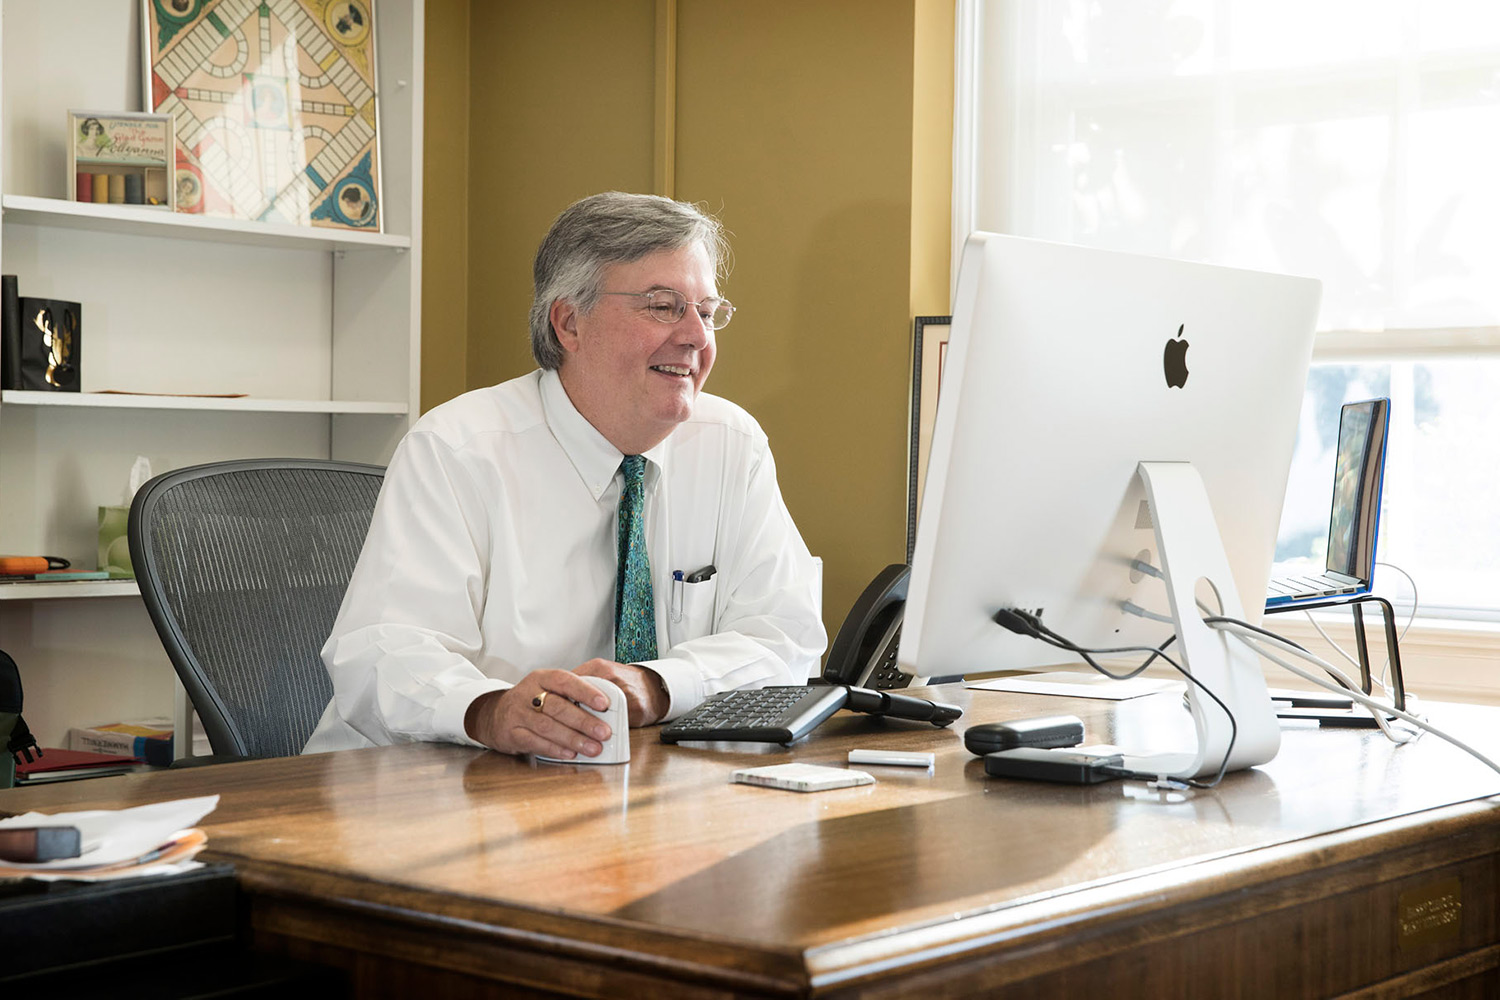 John Unsworth began his tenure as the new university librarian and dean of libraries in June.